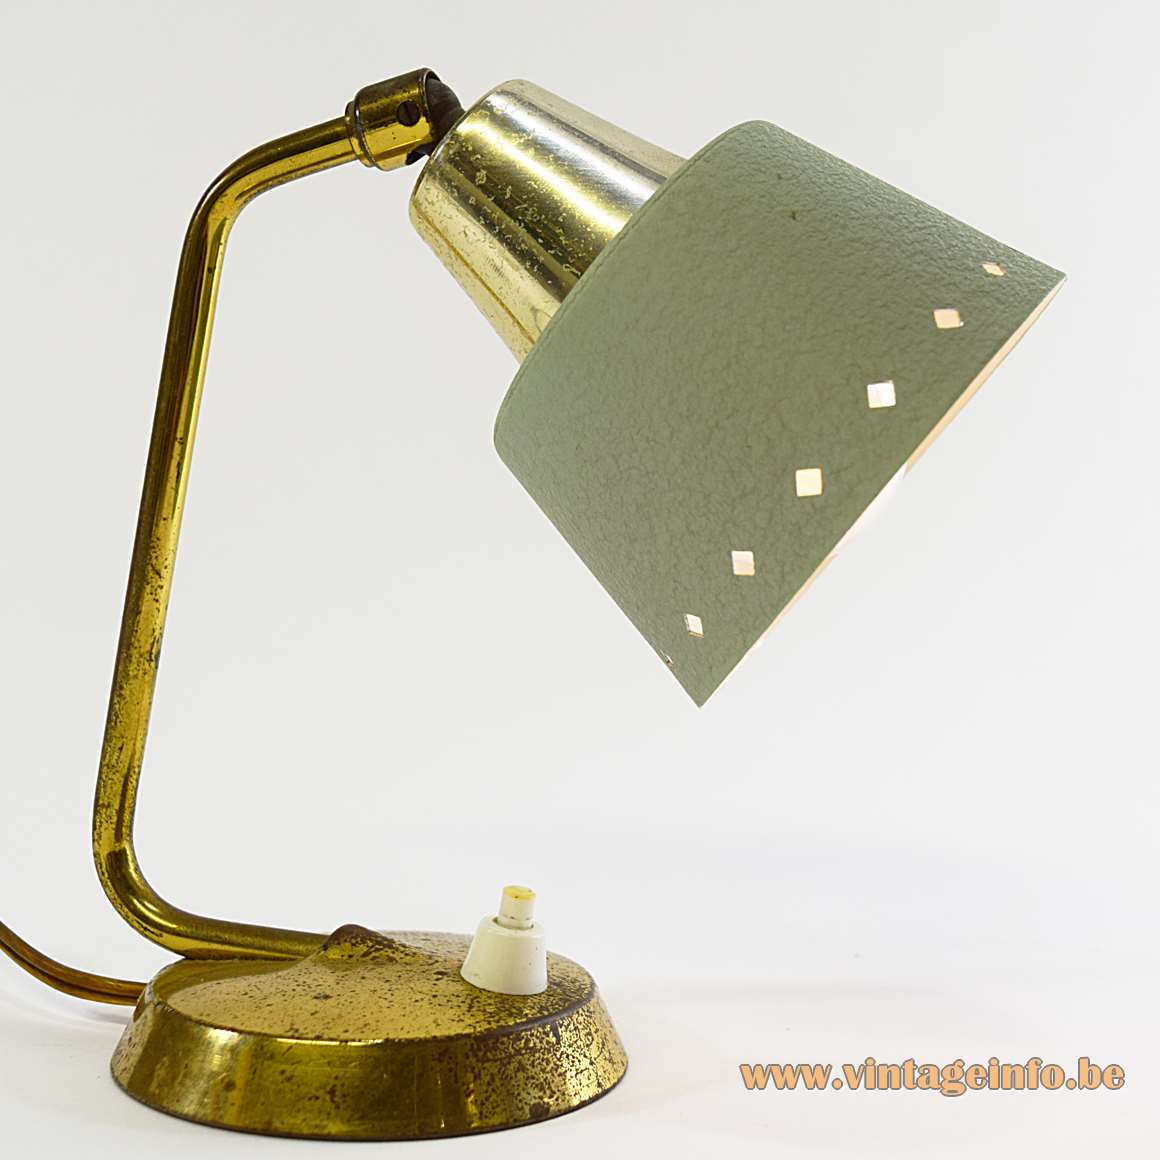 1950s Perforated Bedside Lamp